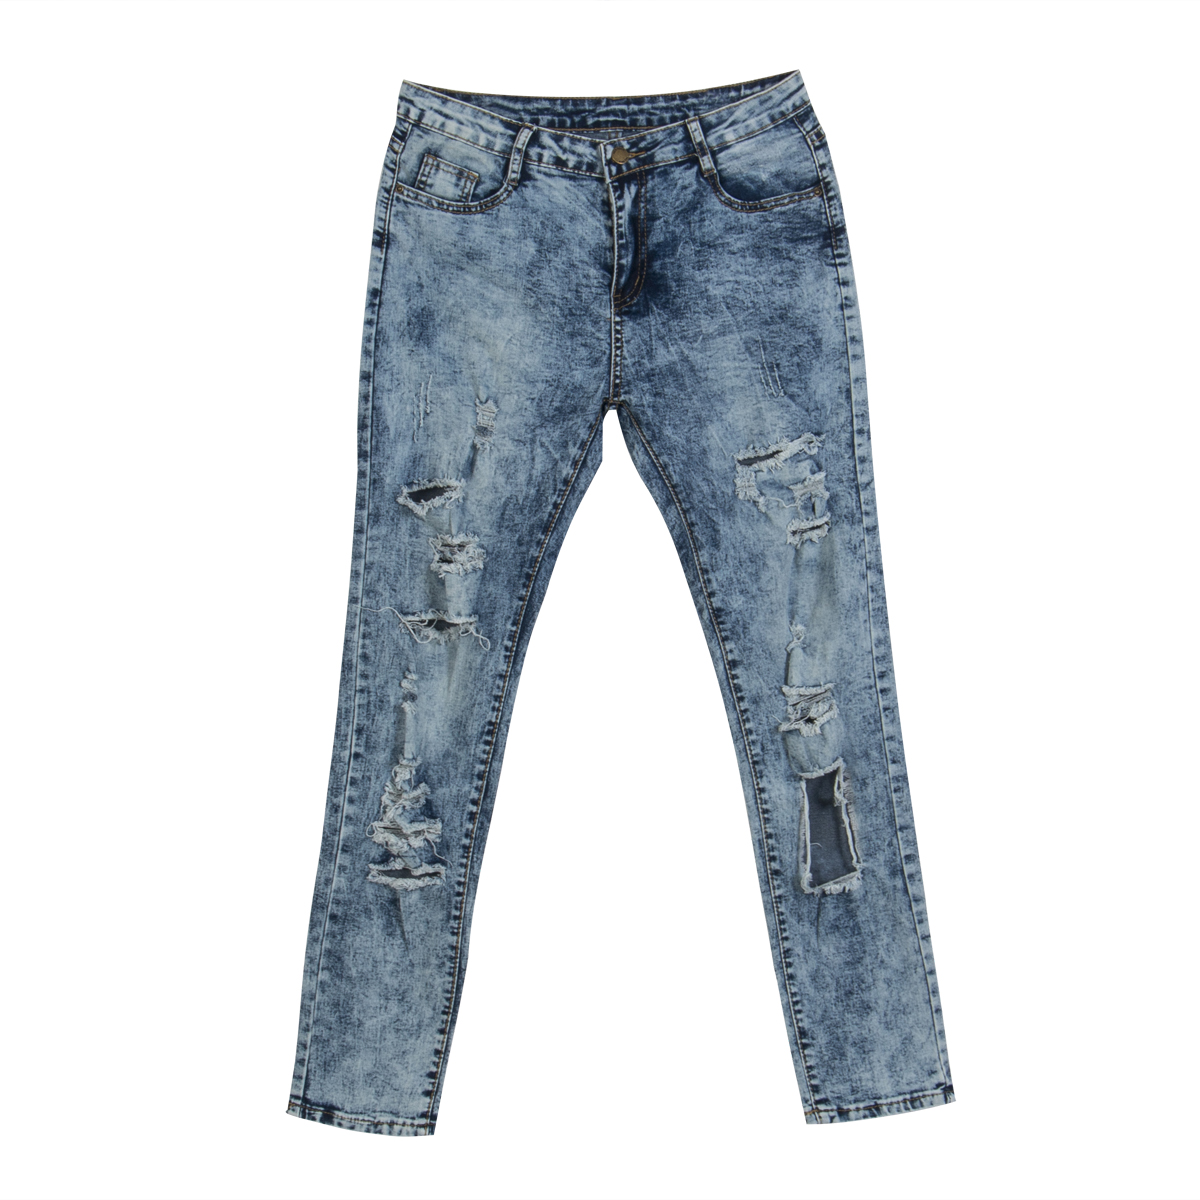 2017 new boyfriend hole ripped jeans women pants cool denim vintage straight jeans for girl low waist casual pants female denim overalls male suspenders front pockets men s ripped jeans casual hole blue bib jeans boyfriend jeans jumpsuit or04